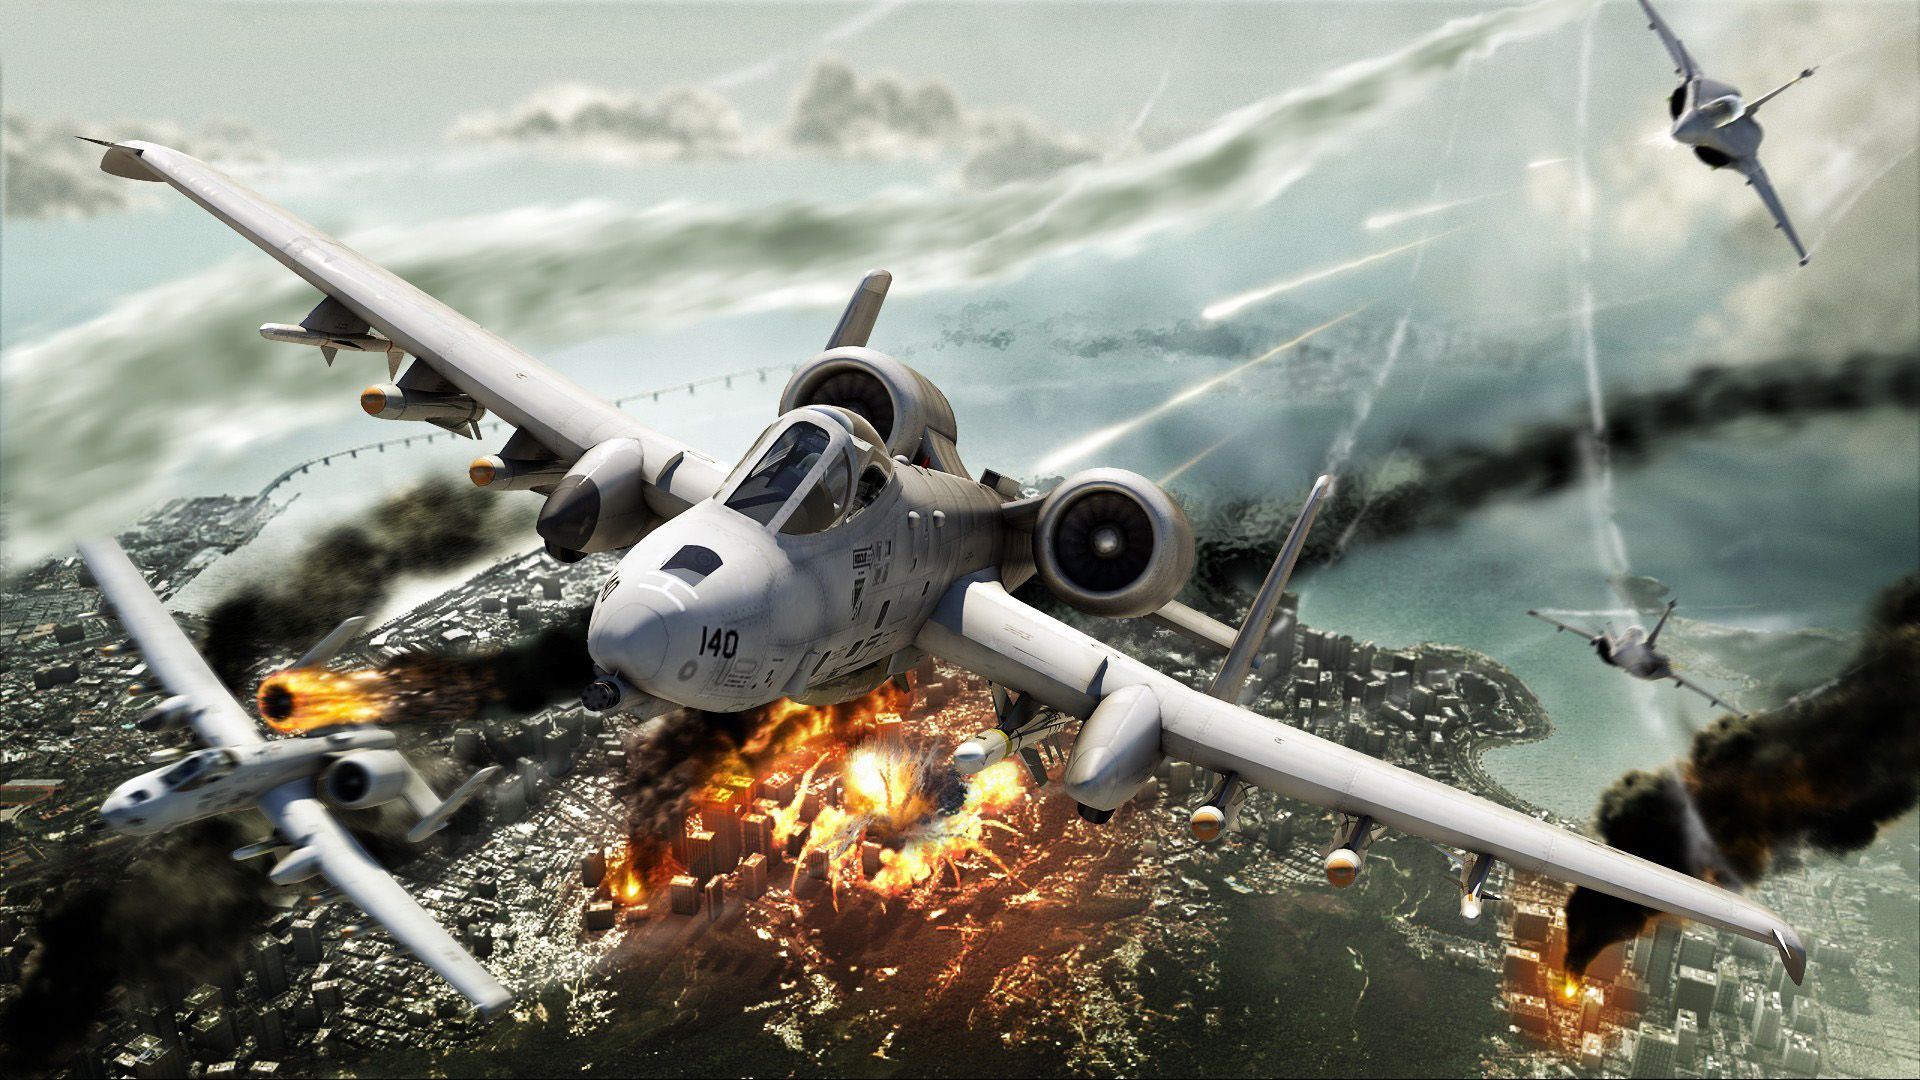 A 10 Thunderbolt Ii Ground Attack Fighter Jets Fighter Aircraft